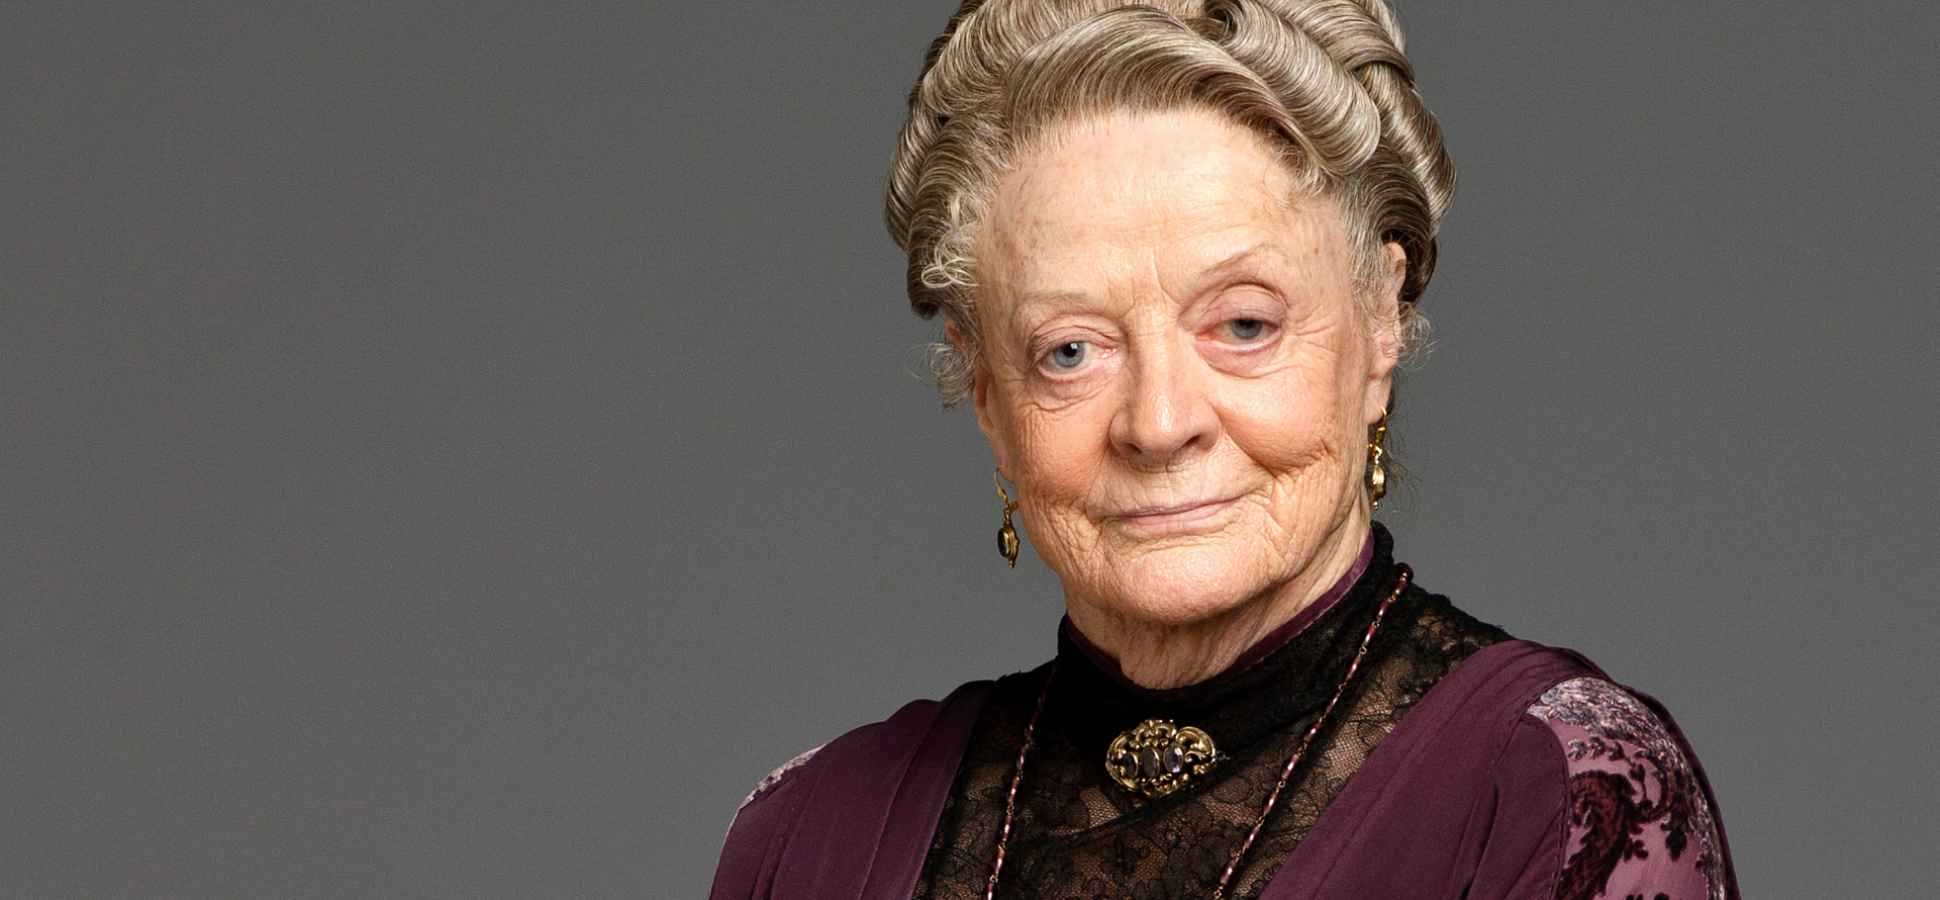 12 Leadership and Happiness Tips from the Dowager Countess of 'Downton Abbey'